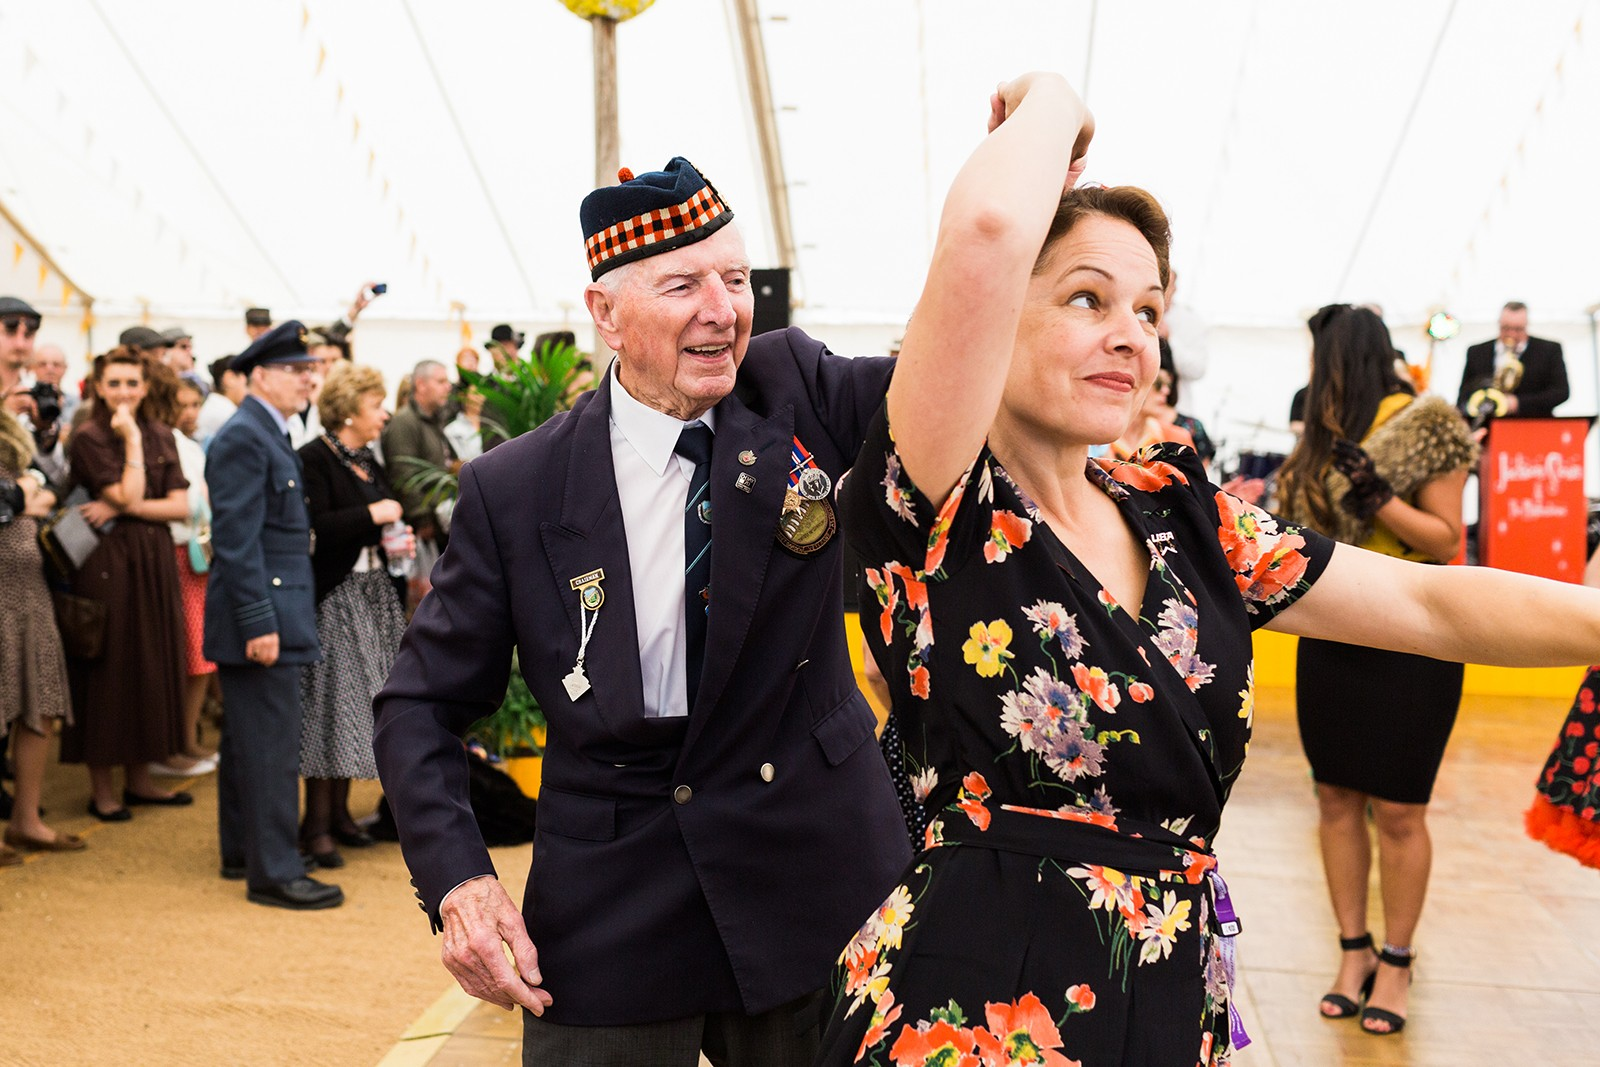 WW2 veteran jiving at Goodwood Revival